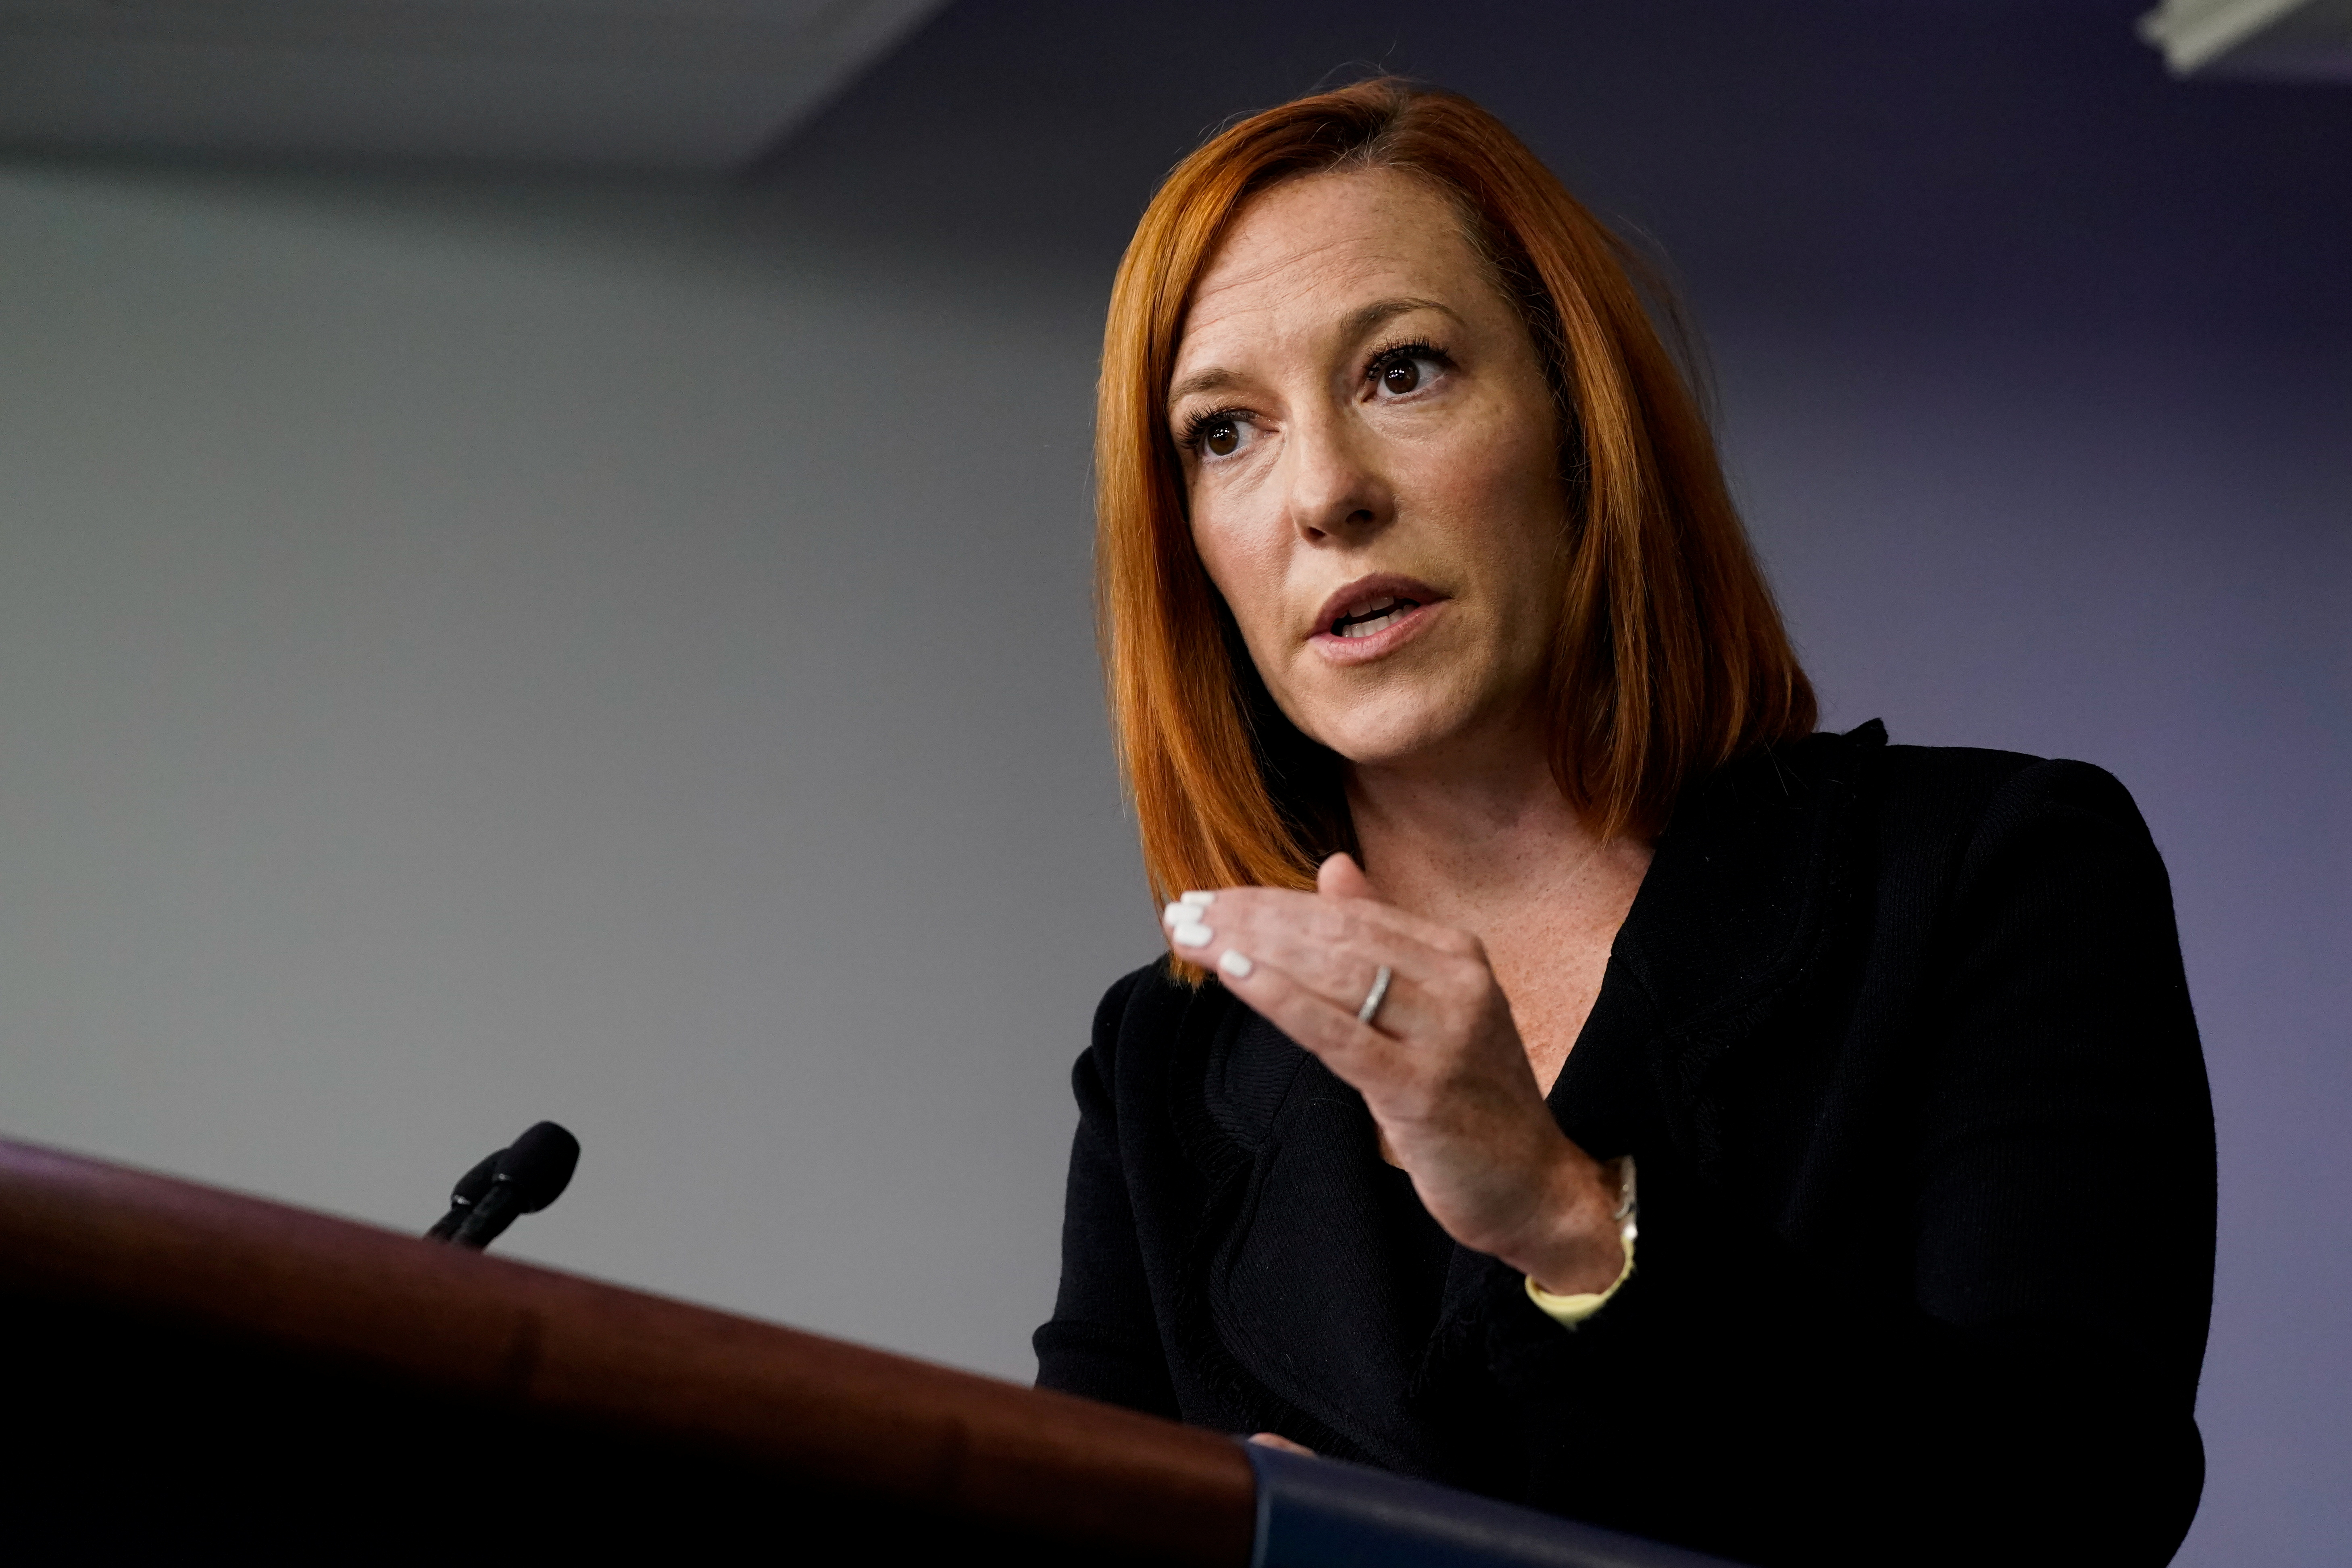 White House press secretary Jen Psaki takes questions during a press briefing at the White House in Washington, U.S., September 20, 2021. REUTERS/Elizabeth Frantz